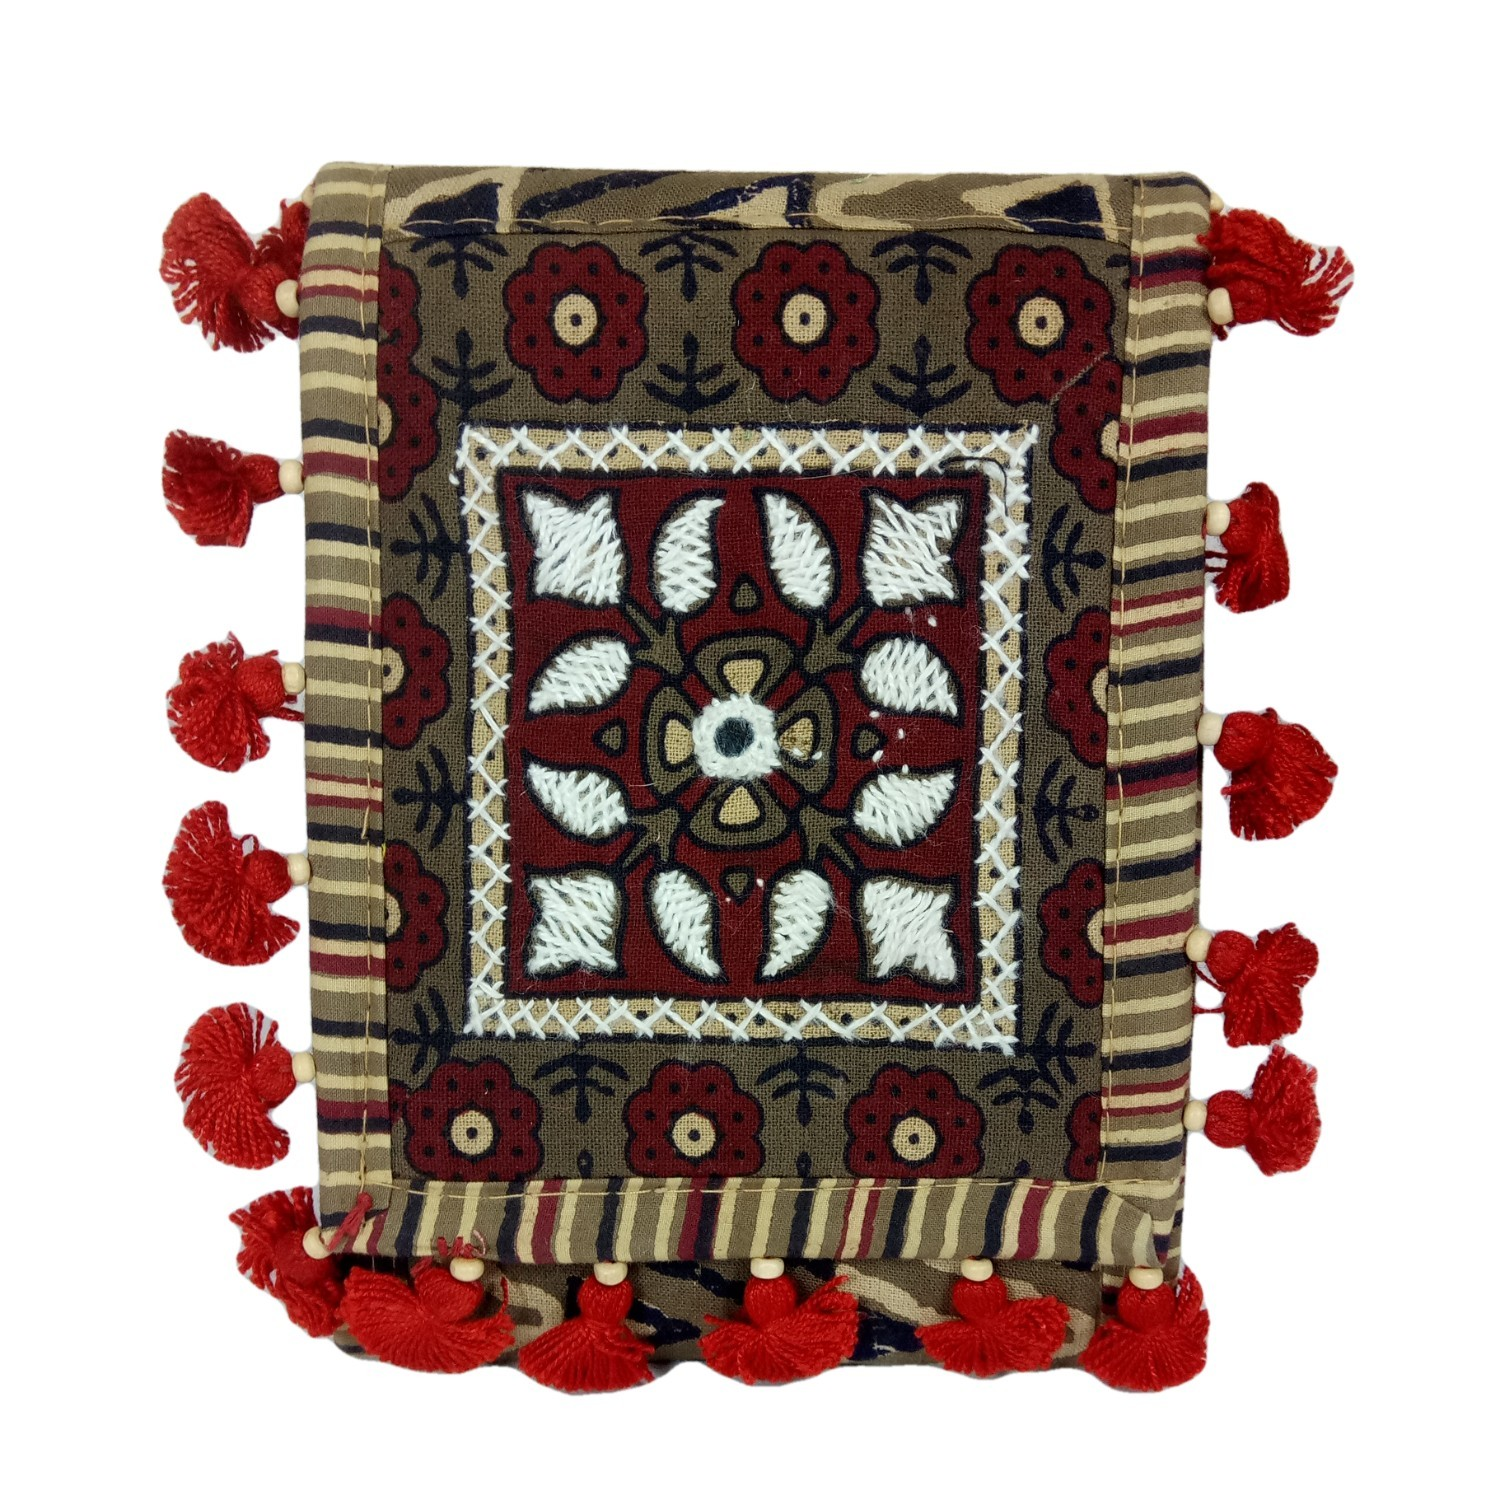 Handmade Excellent Red Genuine Shoulder Bag by Women Self Help Groups of Rajasthan